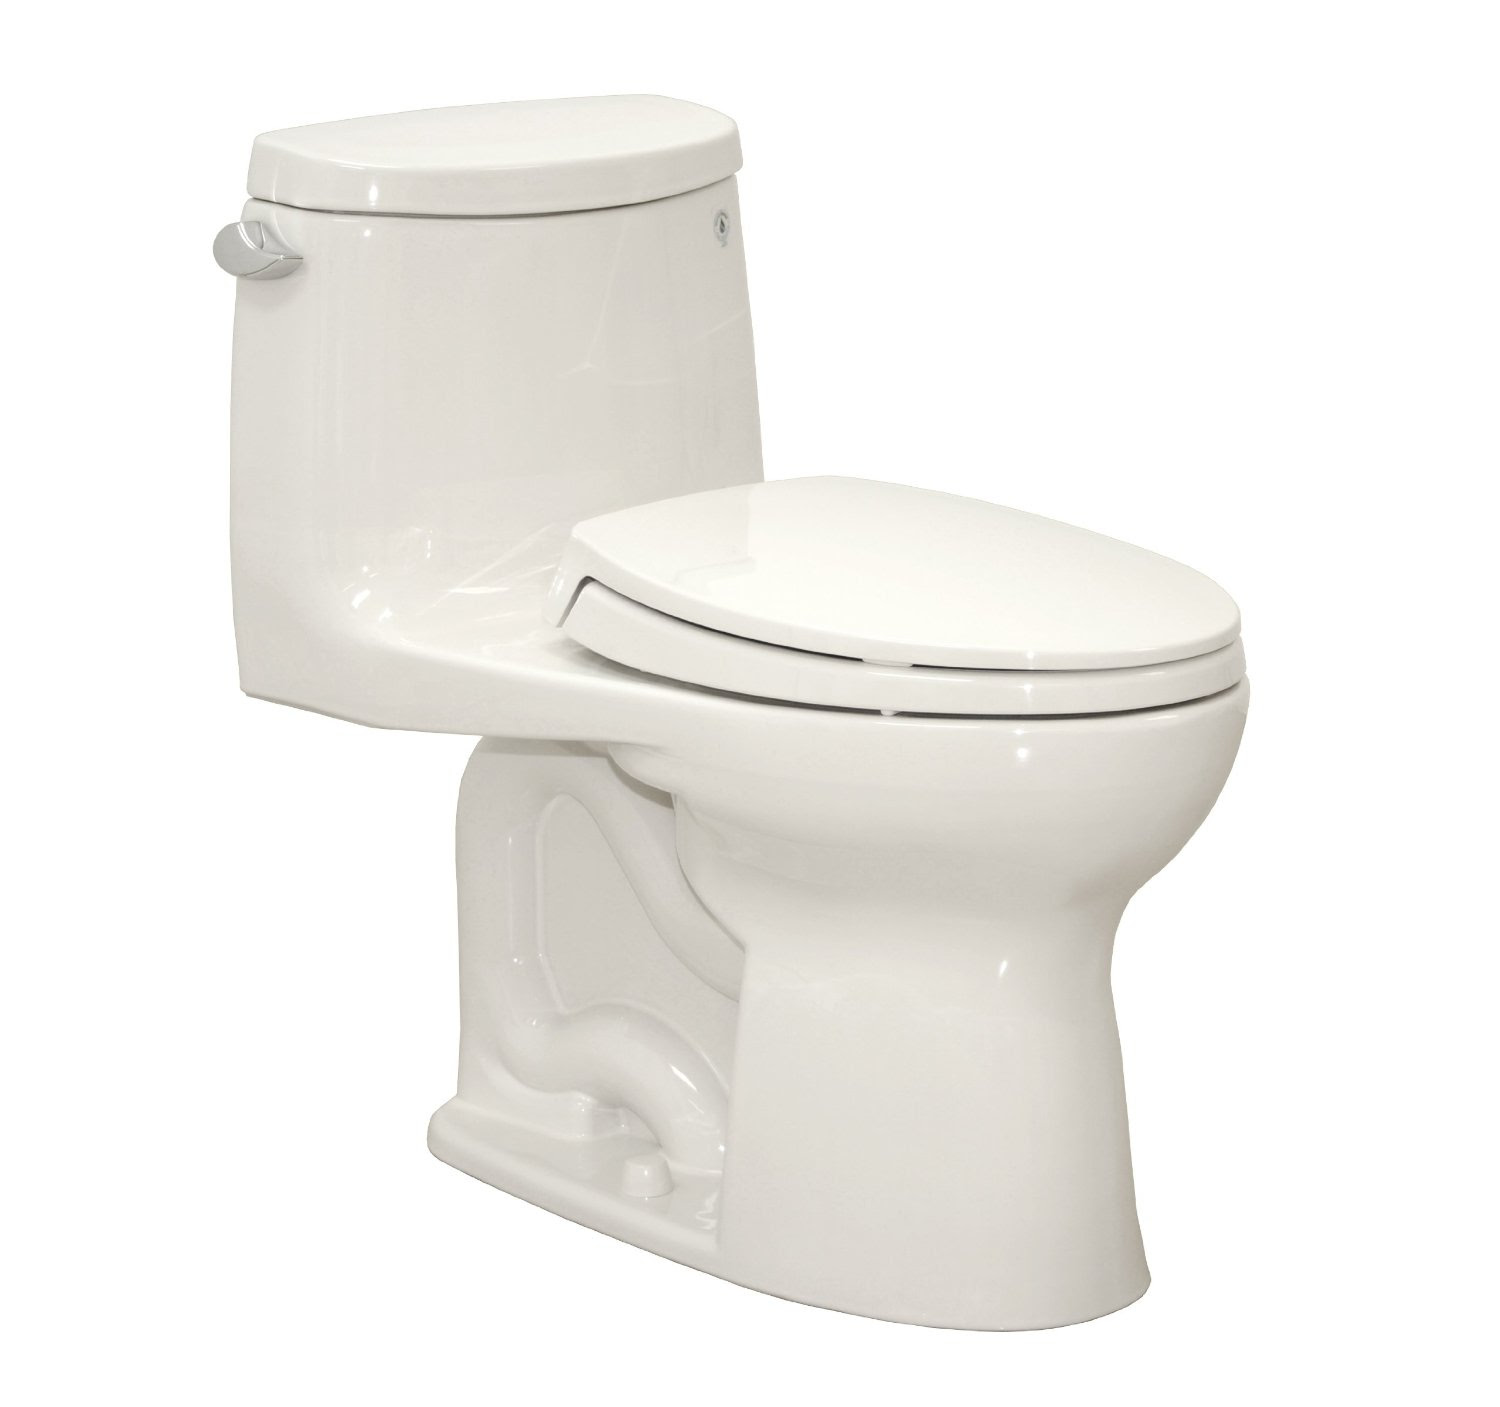 The Best In Depth Toilet Reviews Available